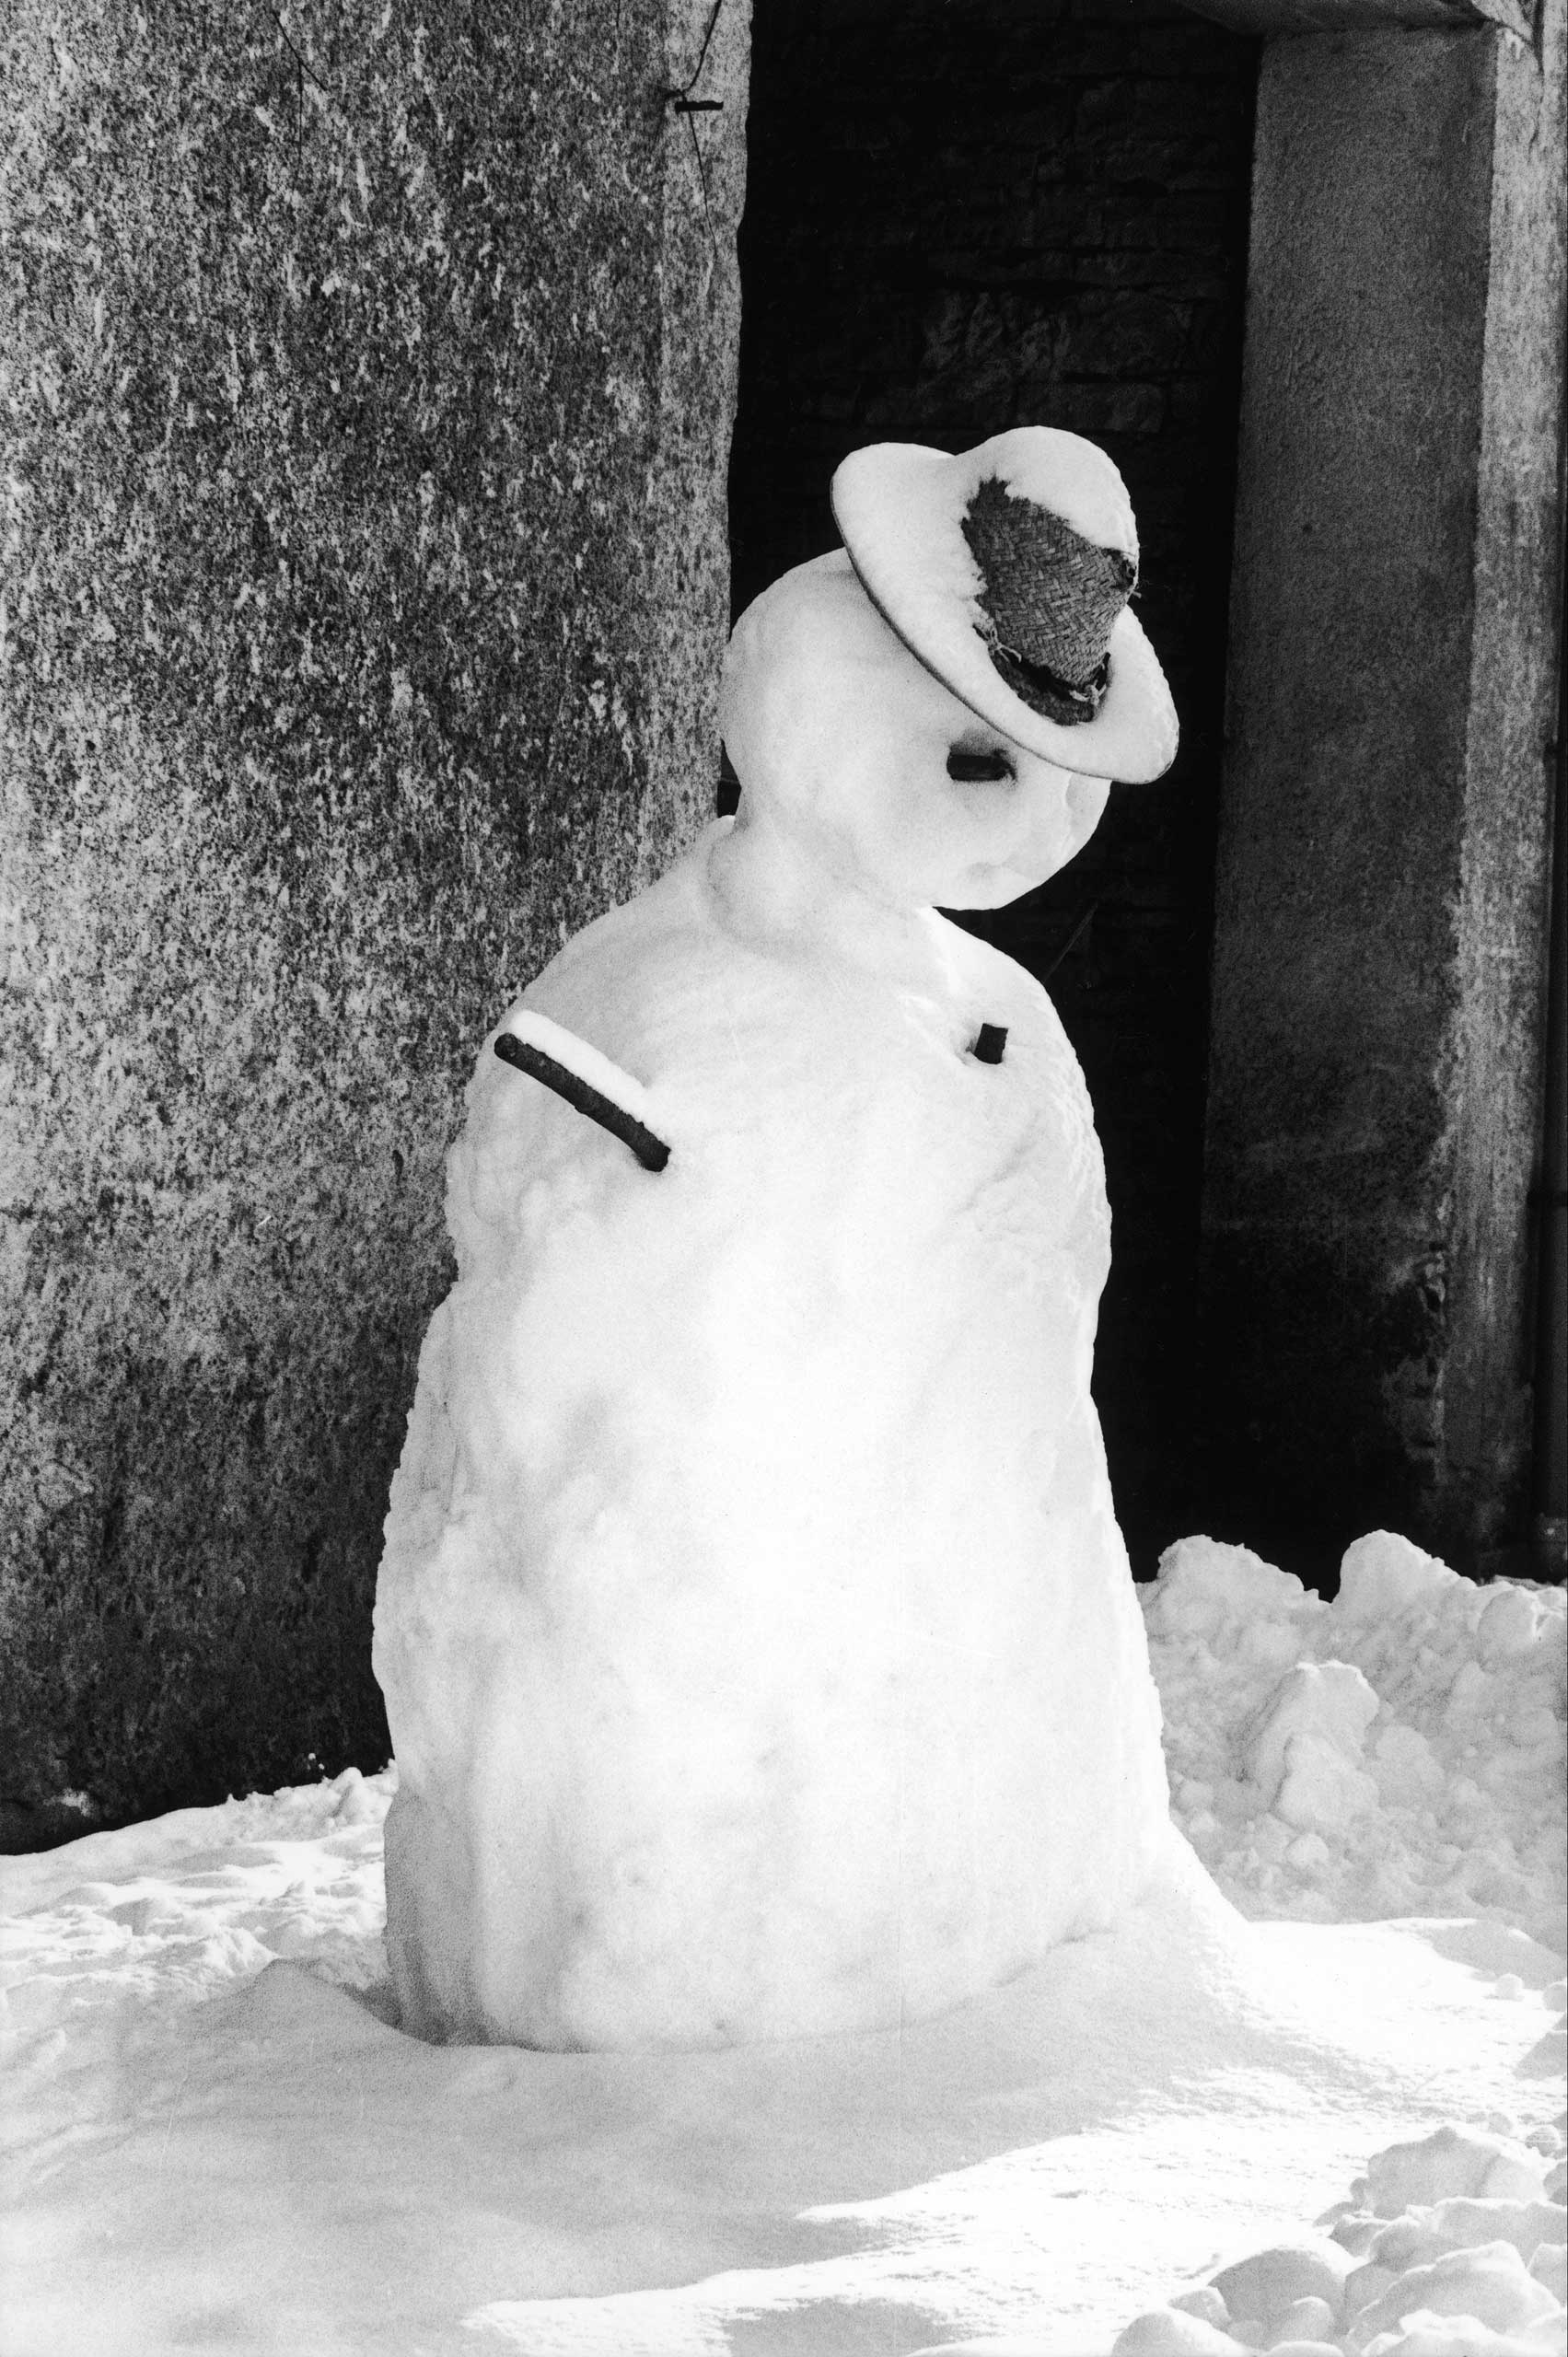 Undated photo of a snowman